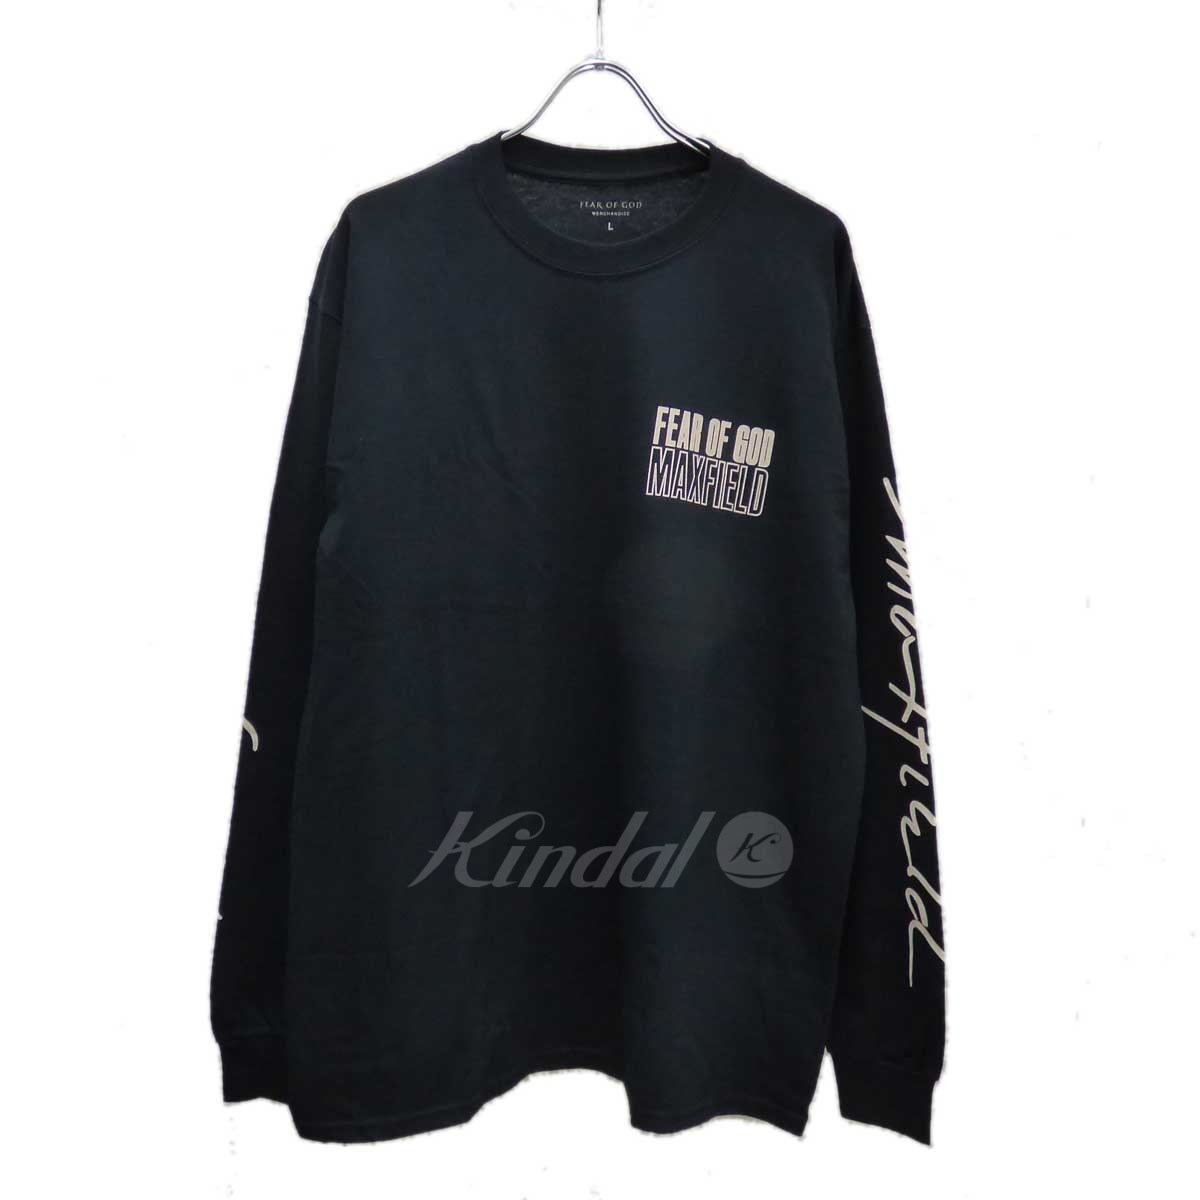 【中古】FOG FEAR OF GOD×MAXFIELD houseofgod staff Tシャツ 【送料無料】 【135547】 【KIND1550】